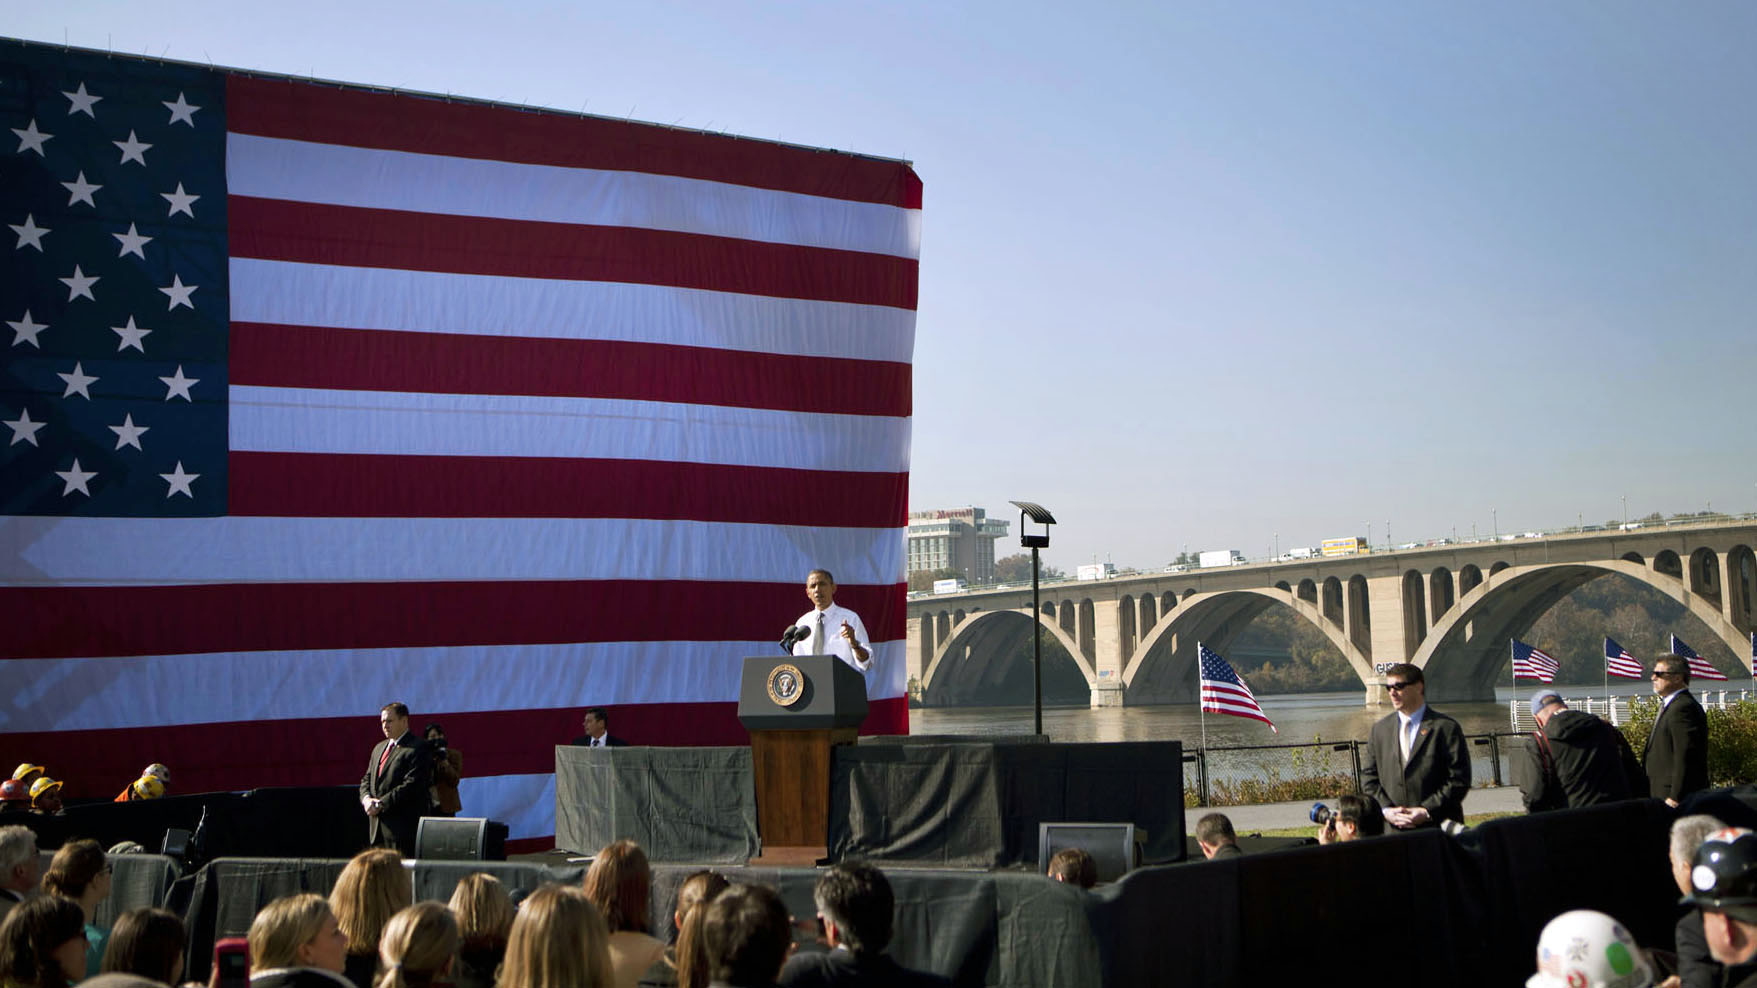 20111102 The President speaks at the Key Bridge